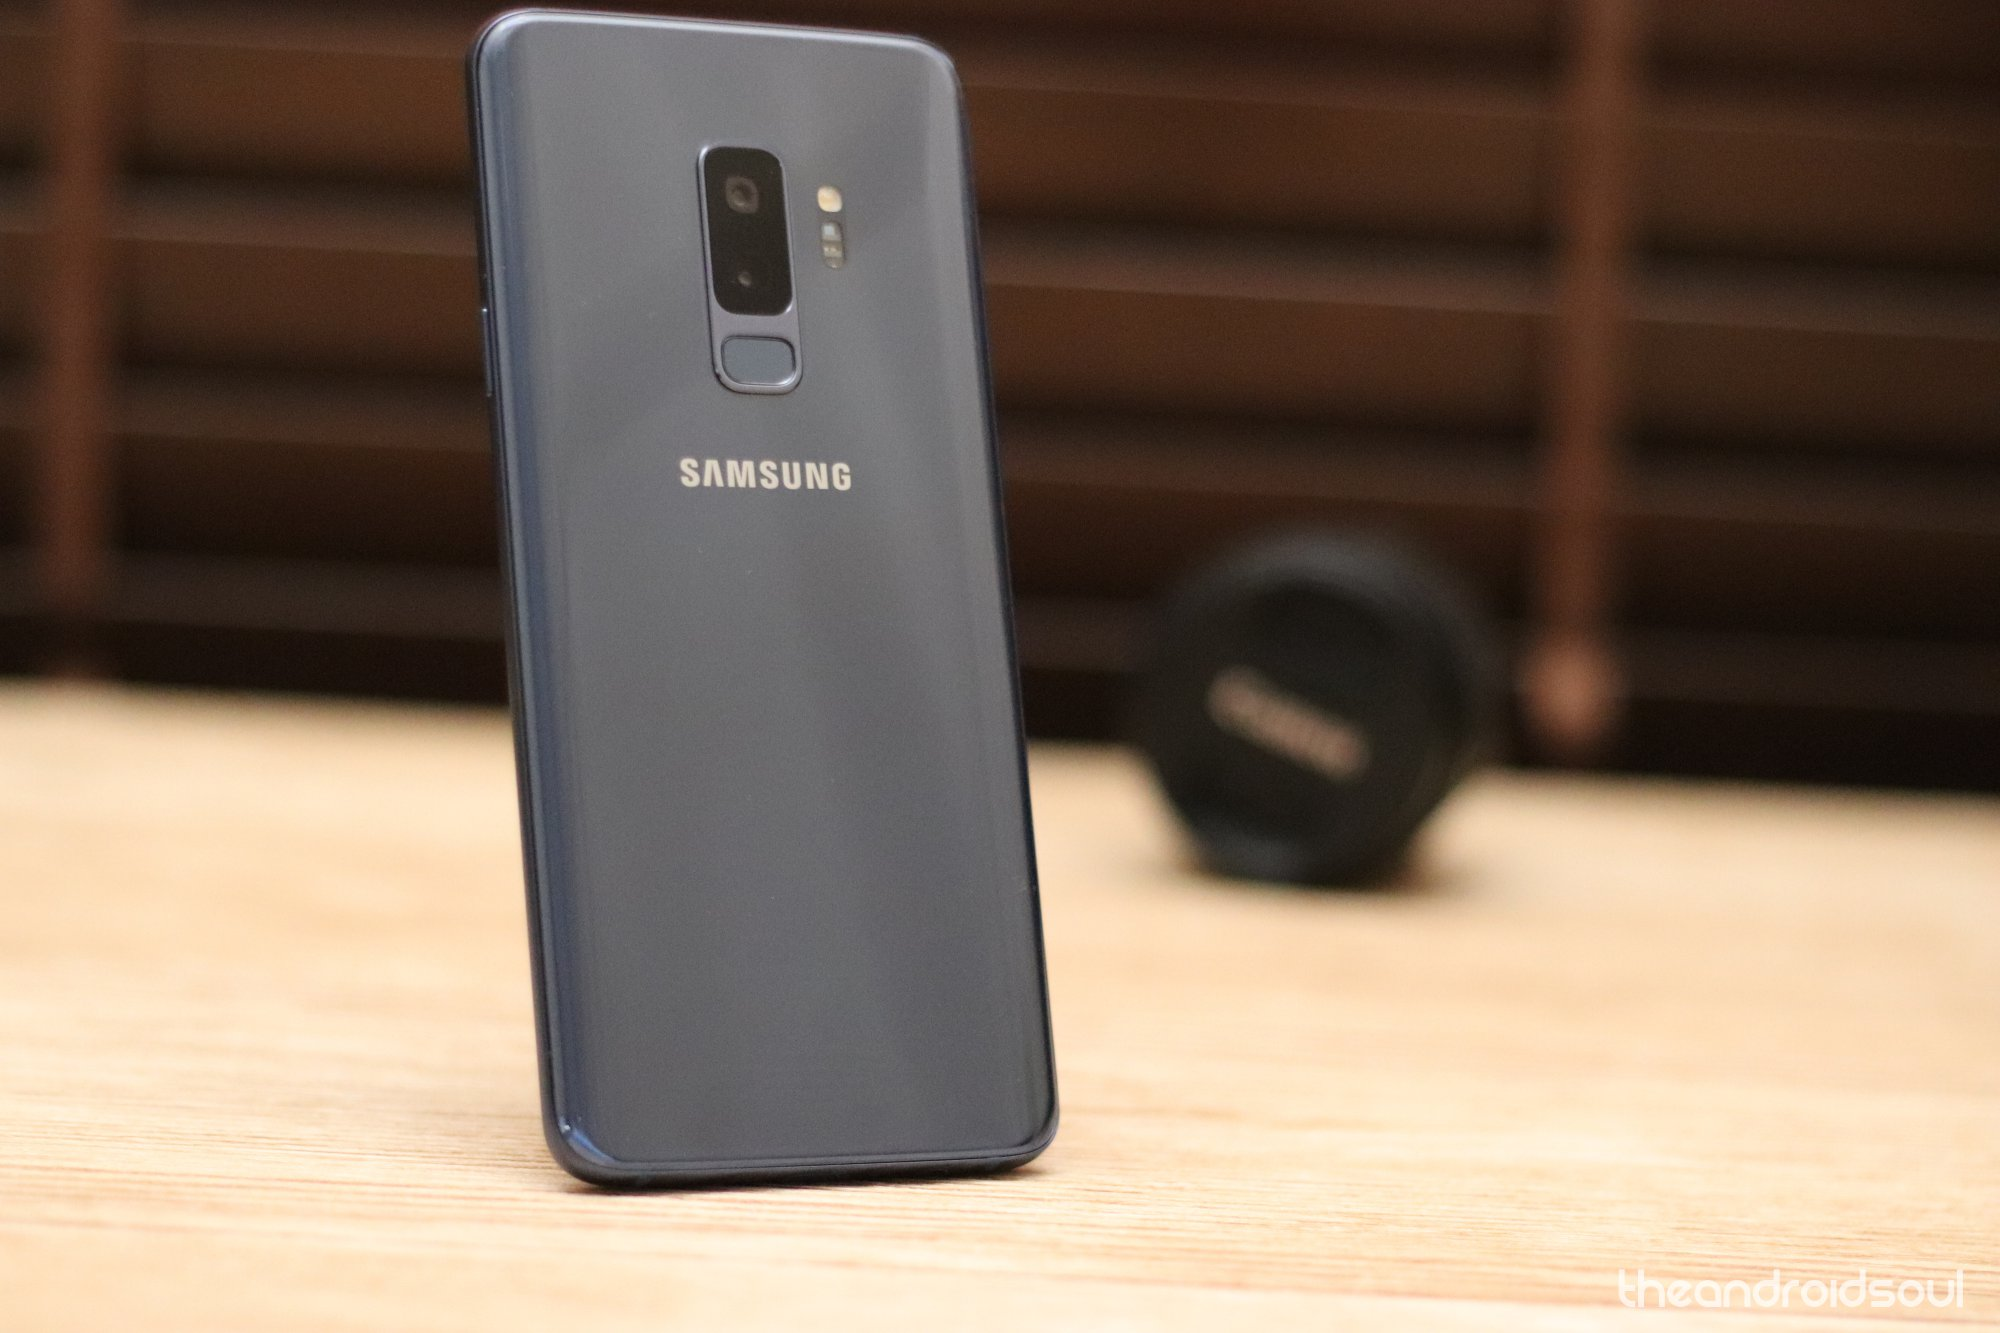 Samsung Galaxy S9 and S9 Plus: All you need to know